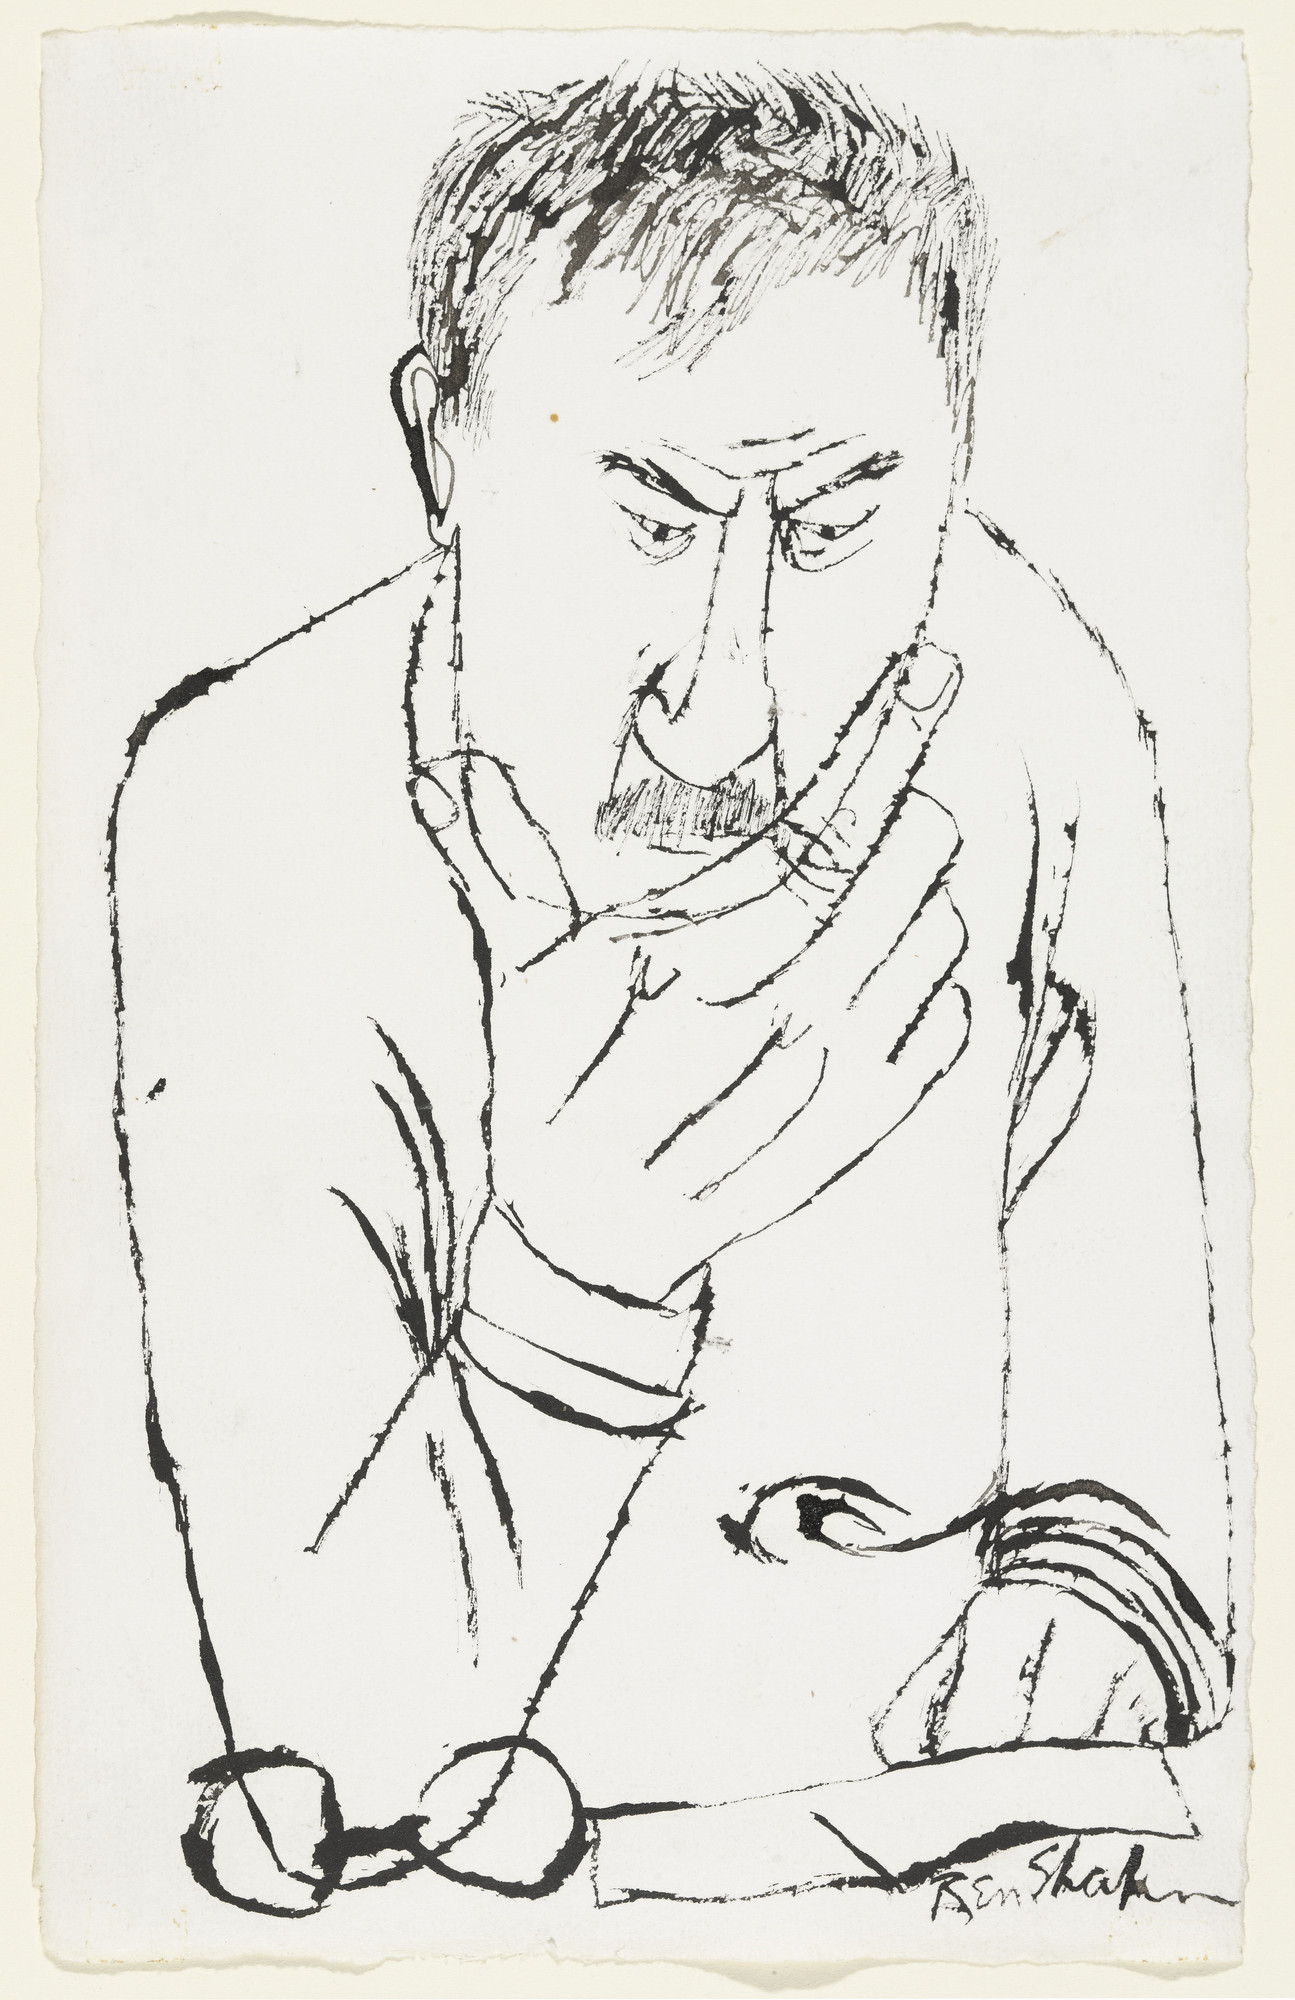 Ben Shahn. Self-Portrait. (1955)